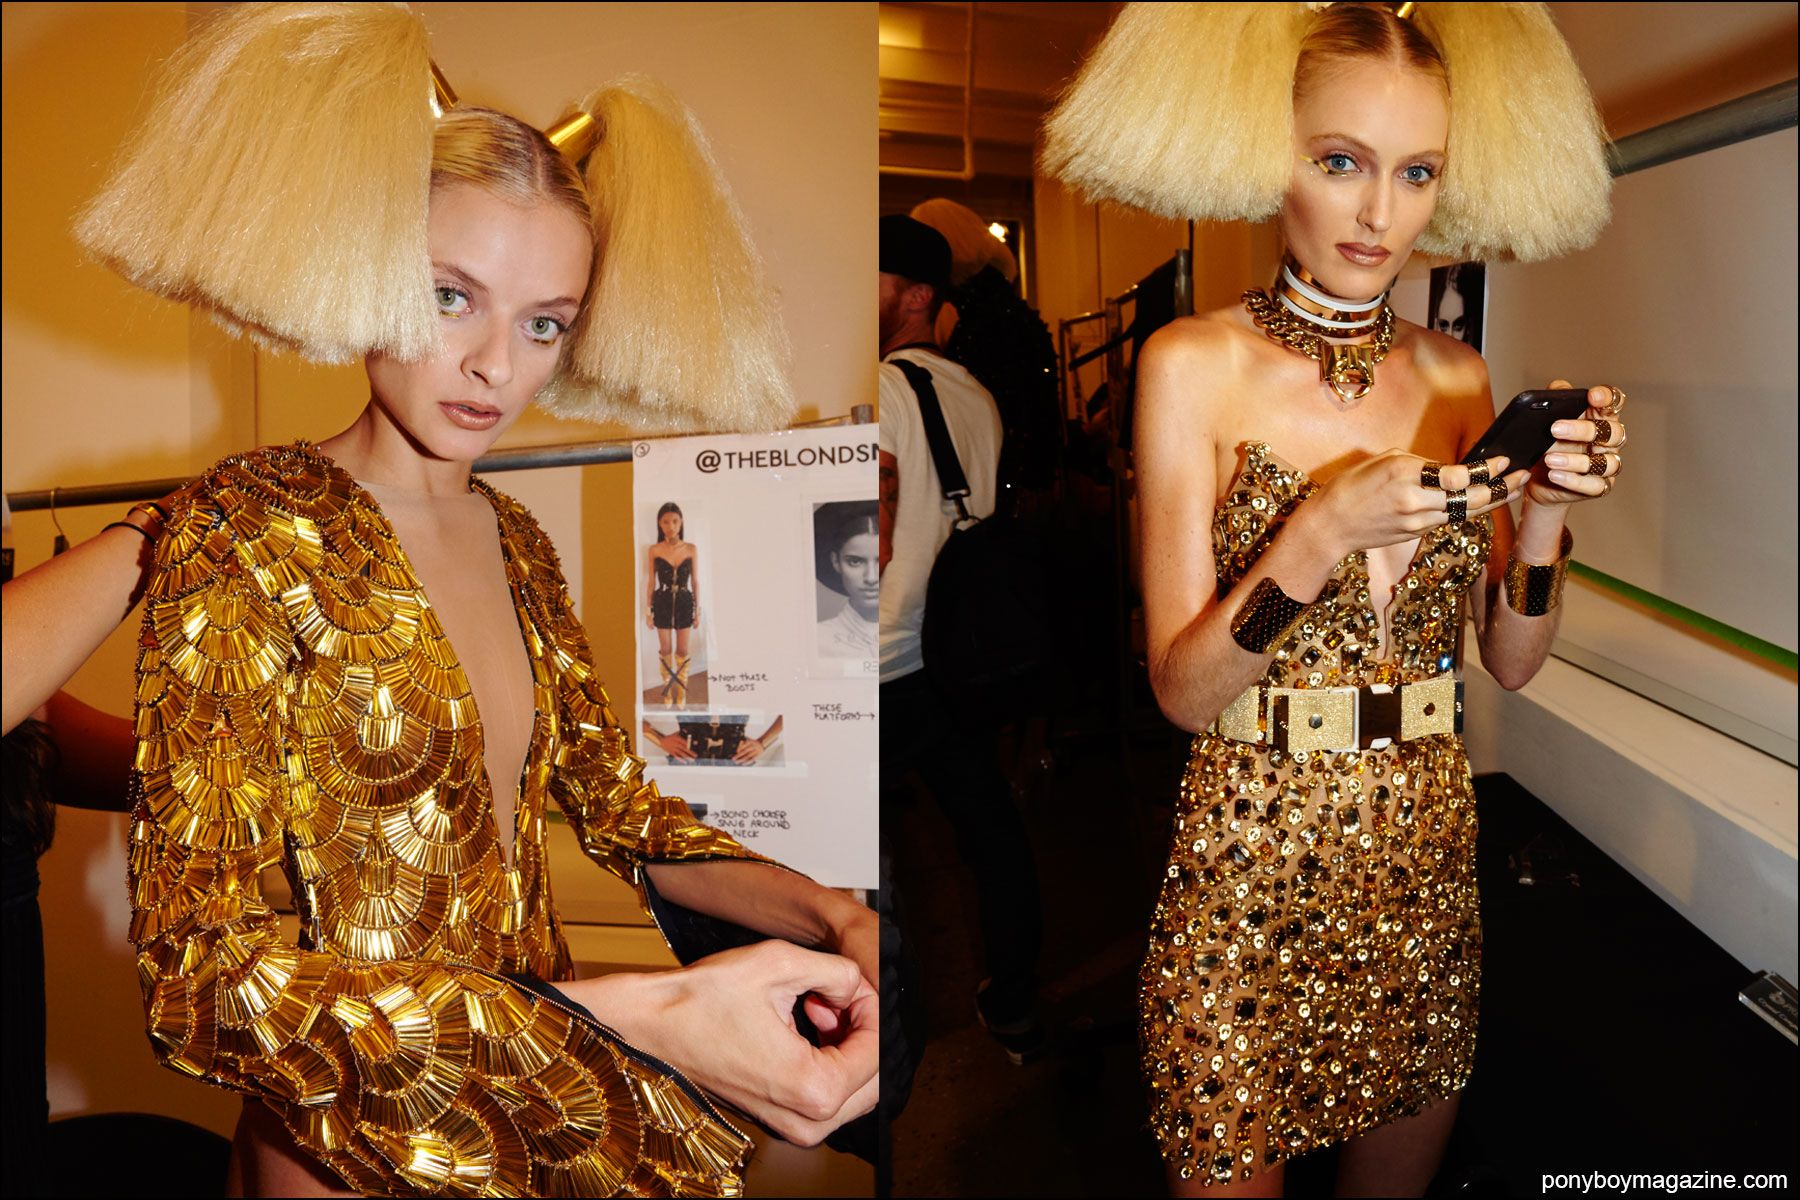 Models change backstage after the Blonds S/S16 runway show. Photographs by Alexander Thompson for Ponyboy magazine NY.